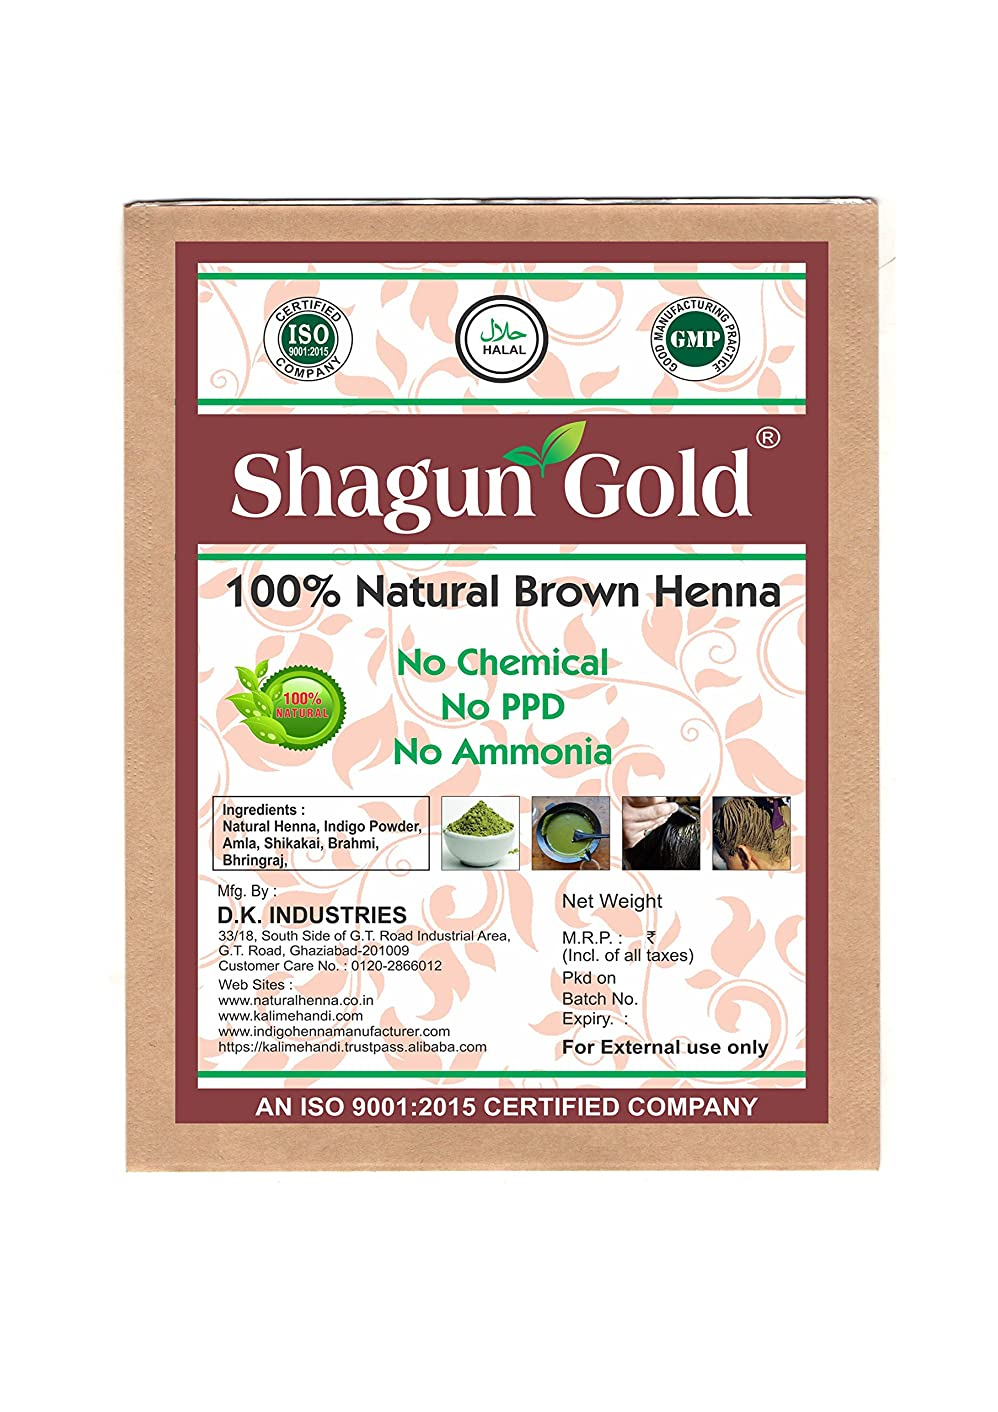 日帰り旅行に有効のれんShagun Gold A 100% Natural 100% Natural Natural Black Henna For Hair Certified By Gmp / Halal / ISO-9001-2015 No Ammonia, No PPD, Chemical Free 14 Oz / ( 1 / 2 lb ) / 400g